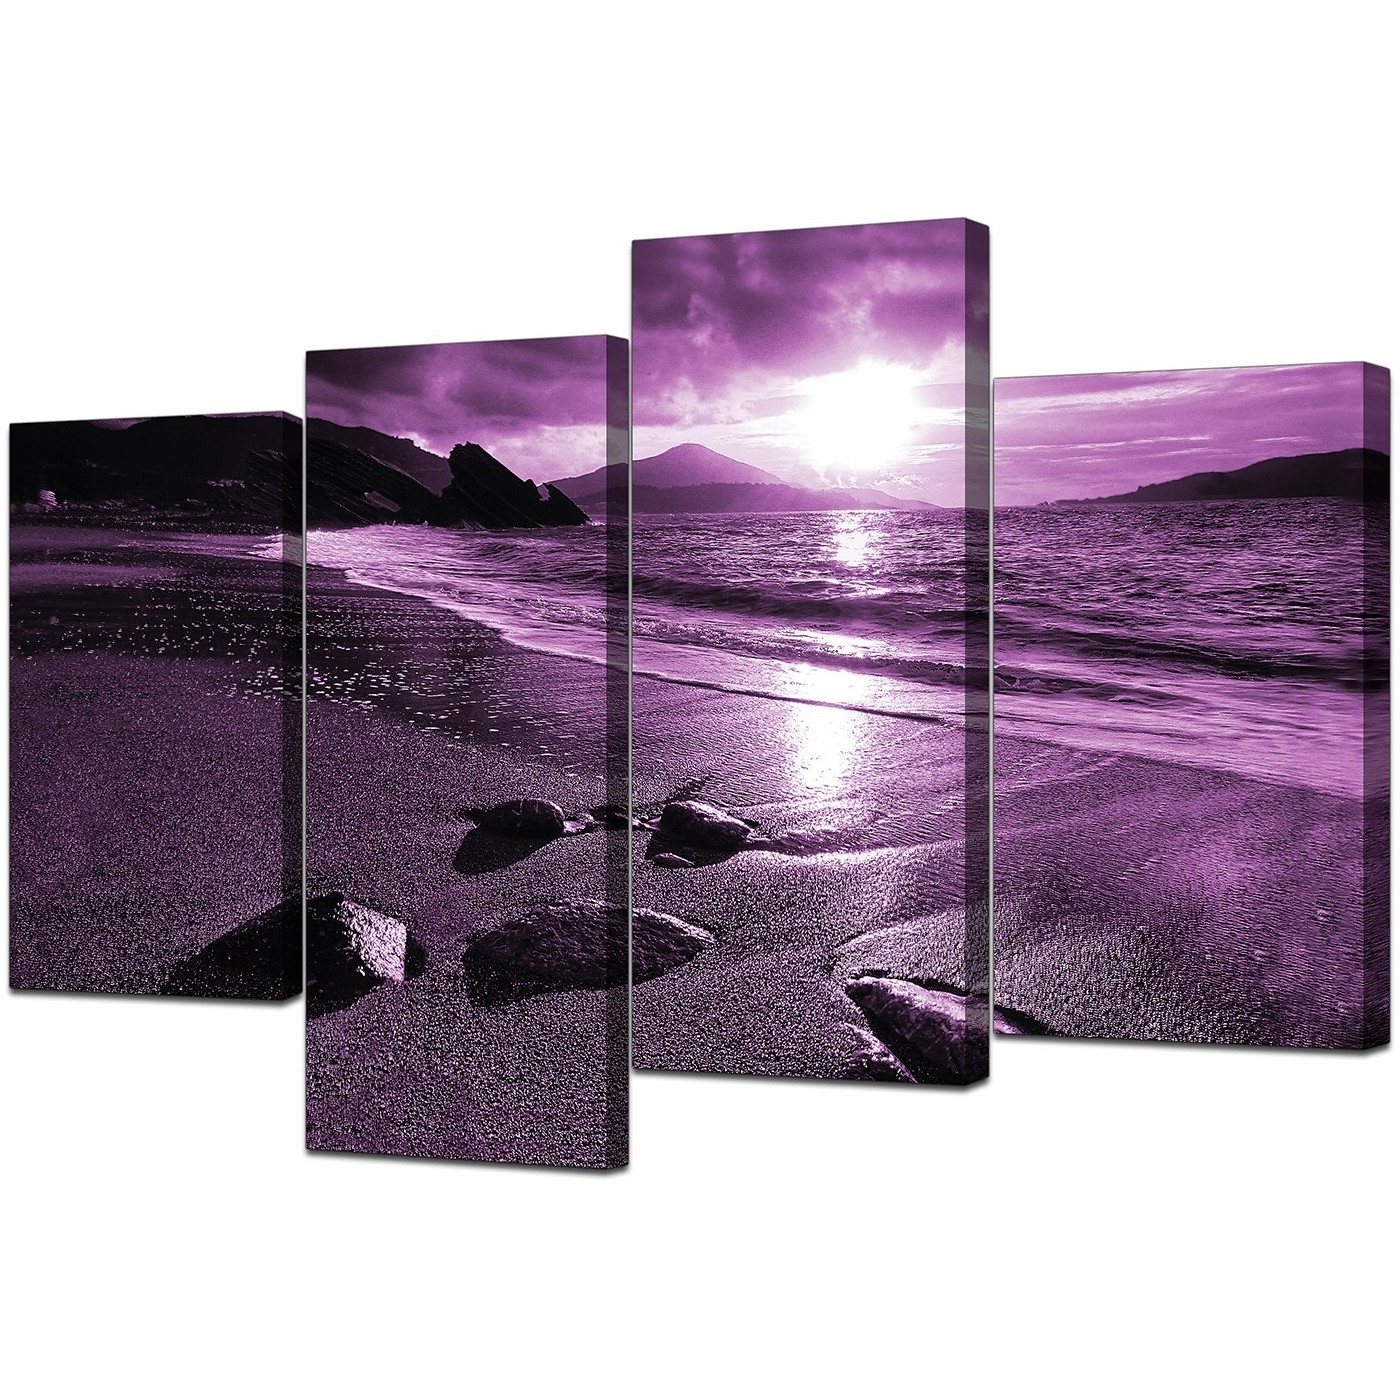 4 Piece Wall Art With Regard To Most Recently Released Canvas Prints Of Sunset In Purple For Your Living Room (View 14 of 15)